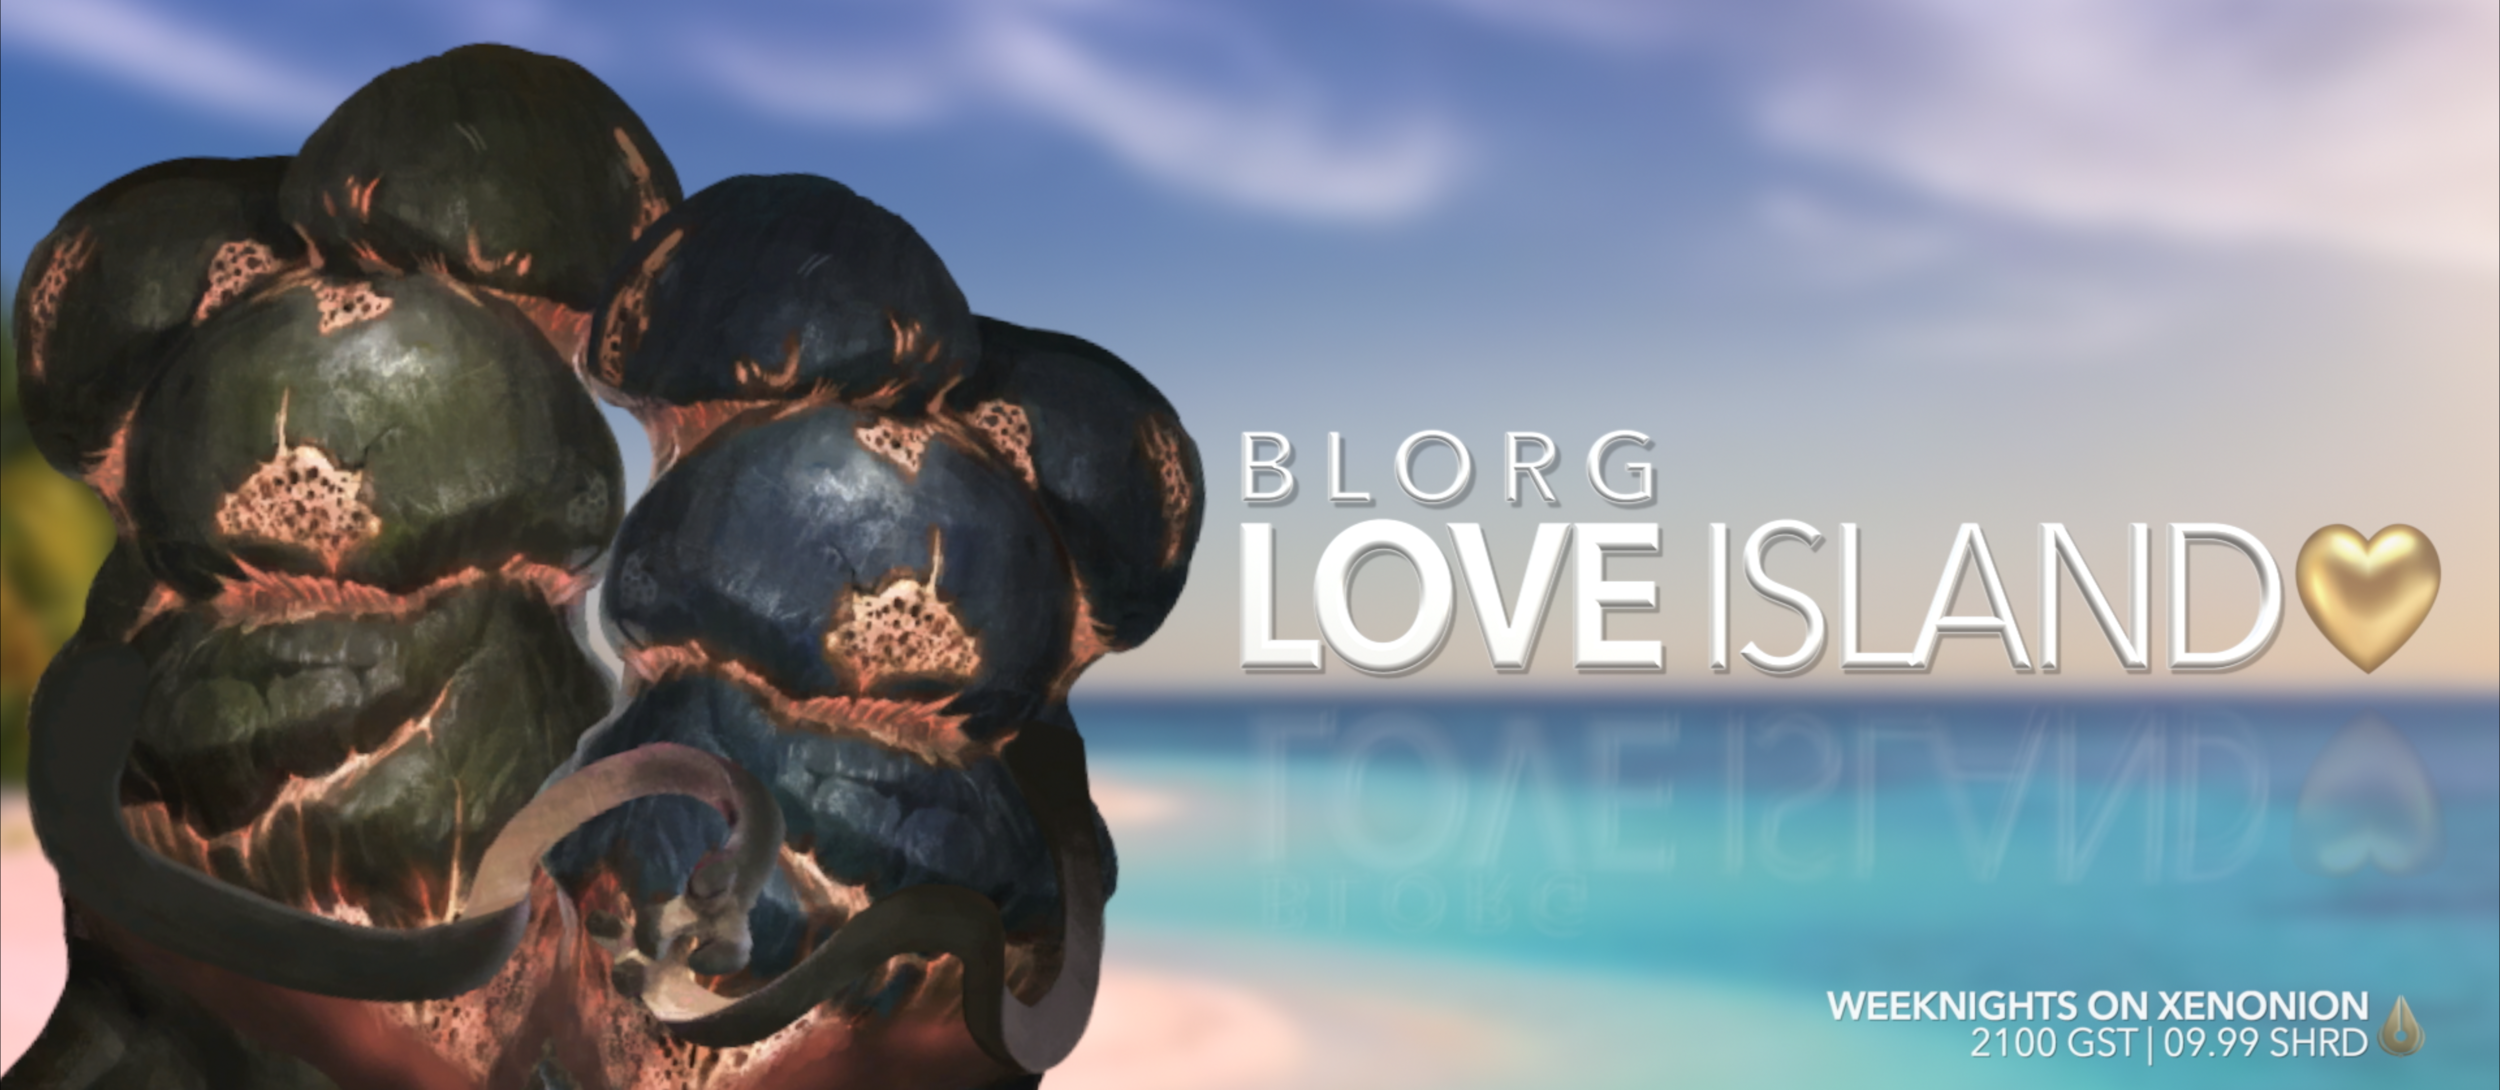 I - Commercial, Blorg Love Island.png